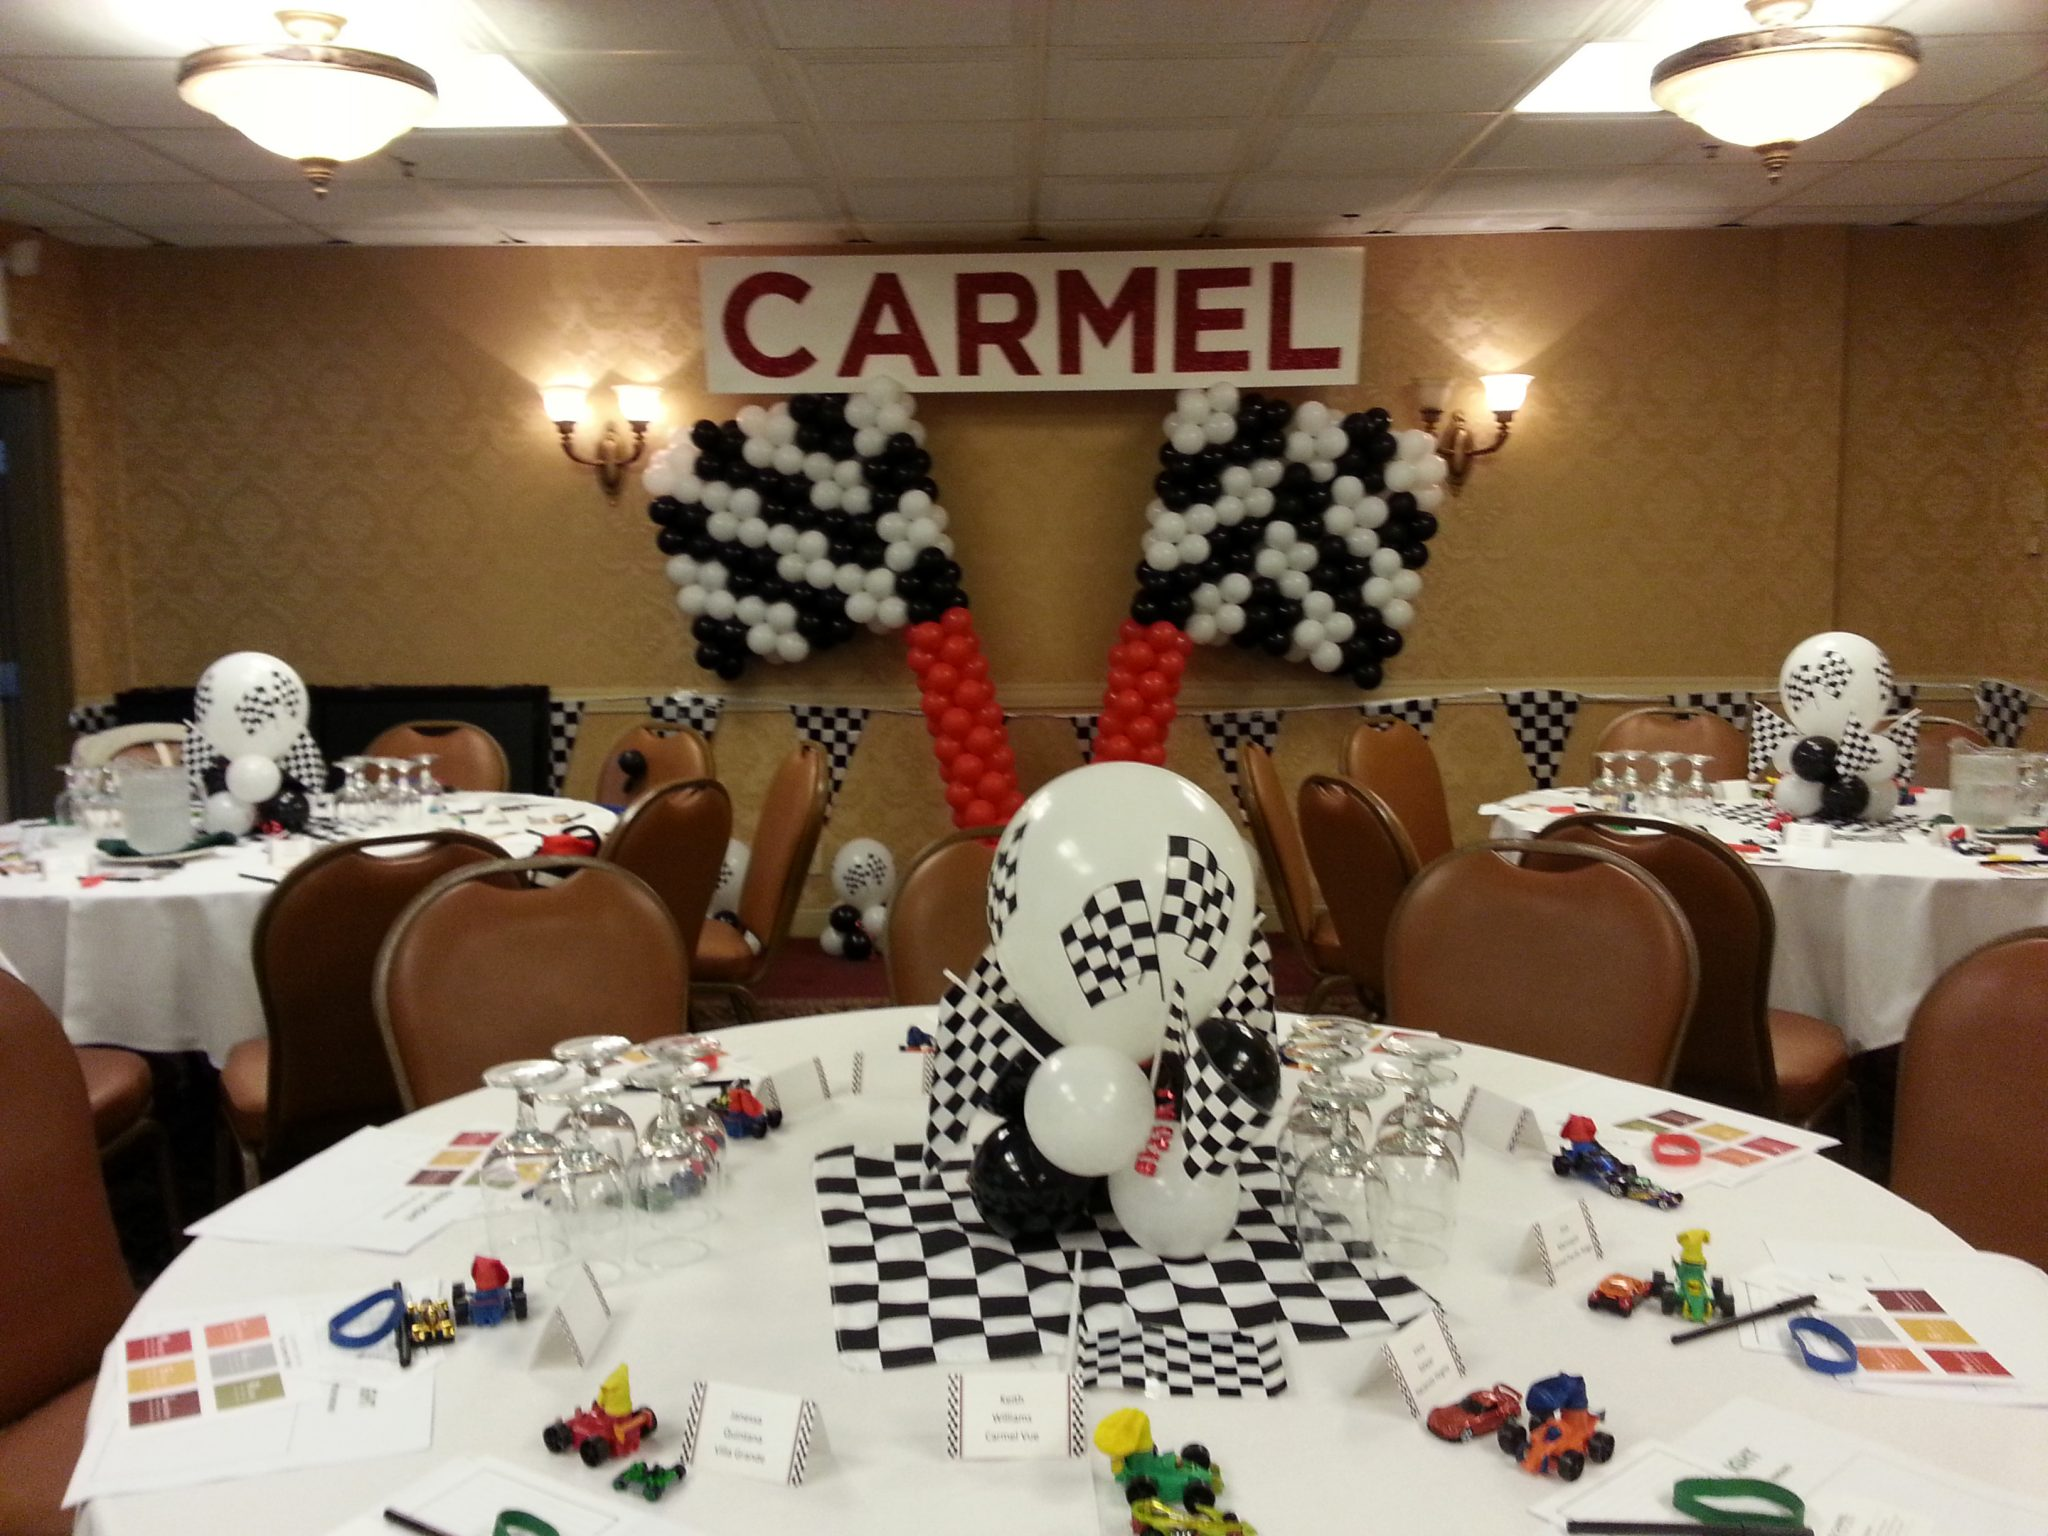 Racing Theme Balloon Centerpieces And Checkered Flag